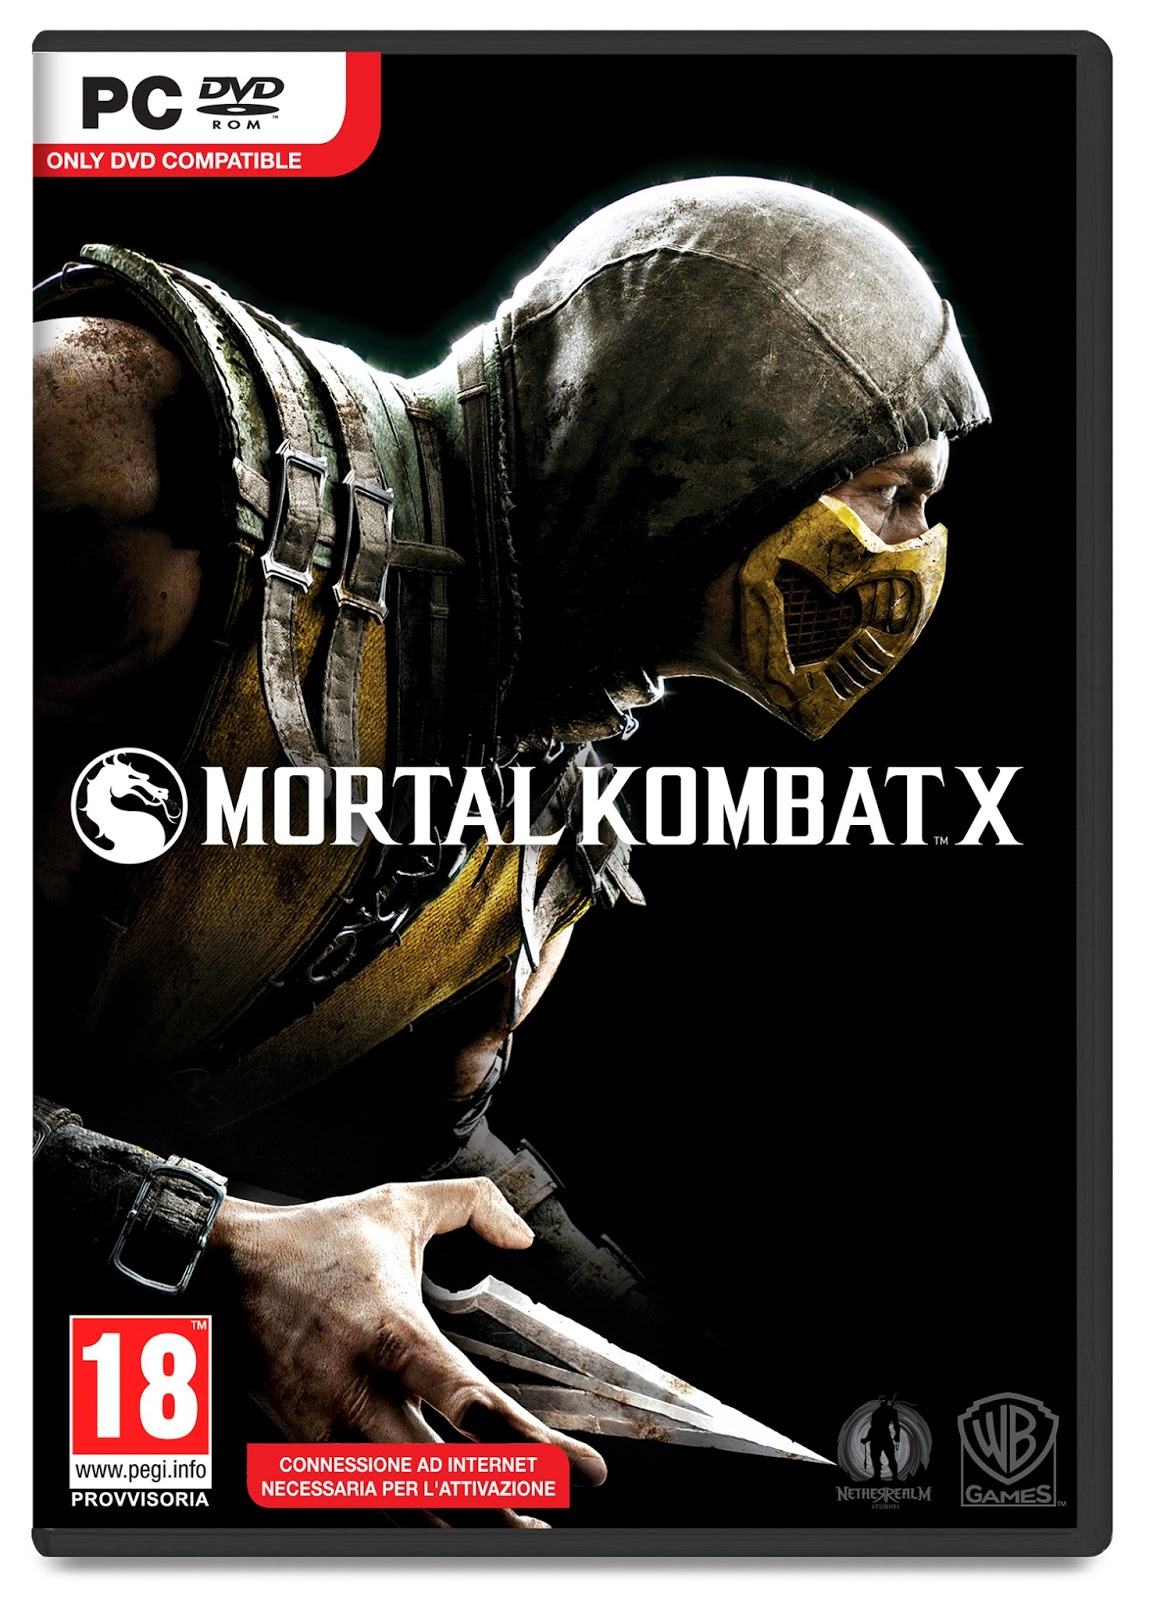 Mortal Kombat X Free Download - Fully Full Version Games For